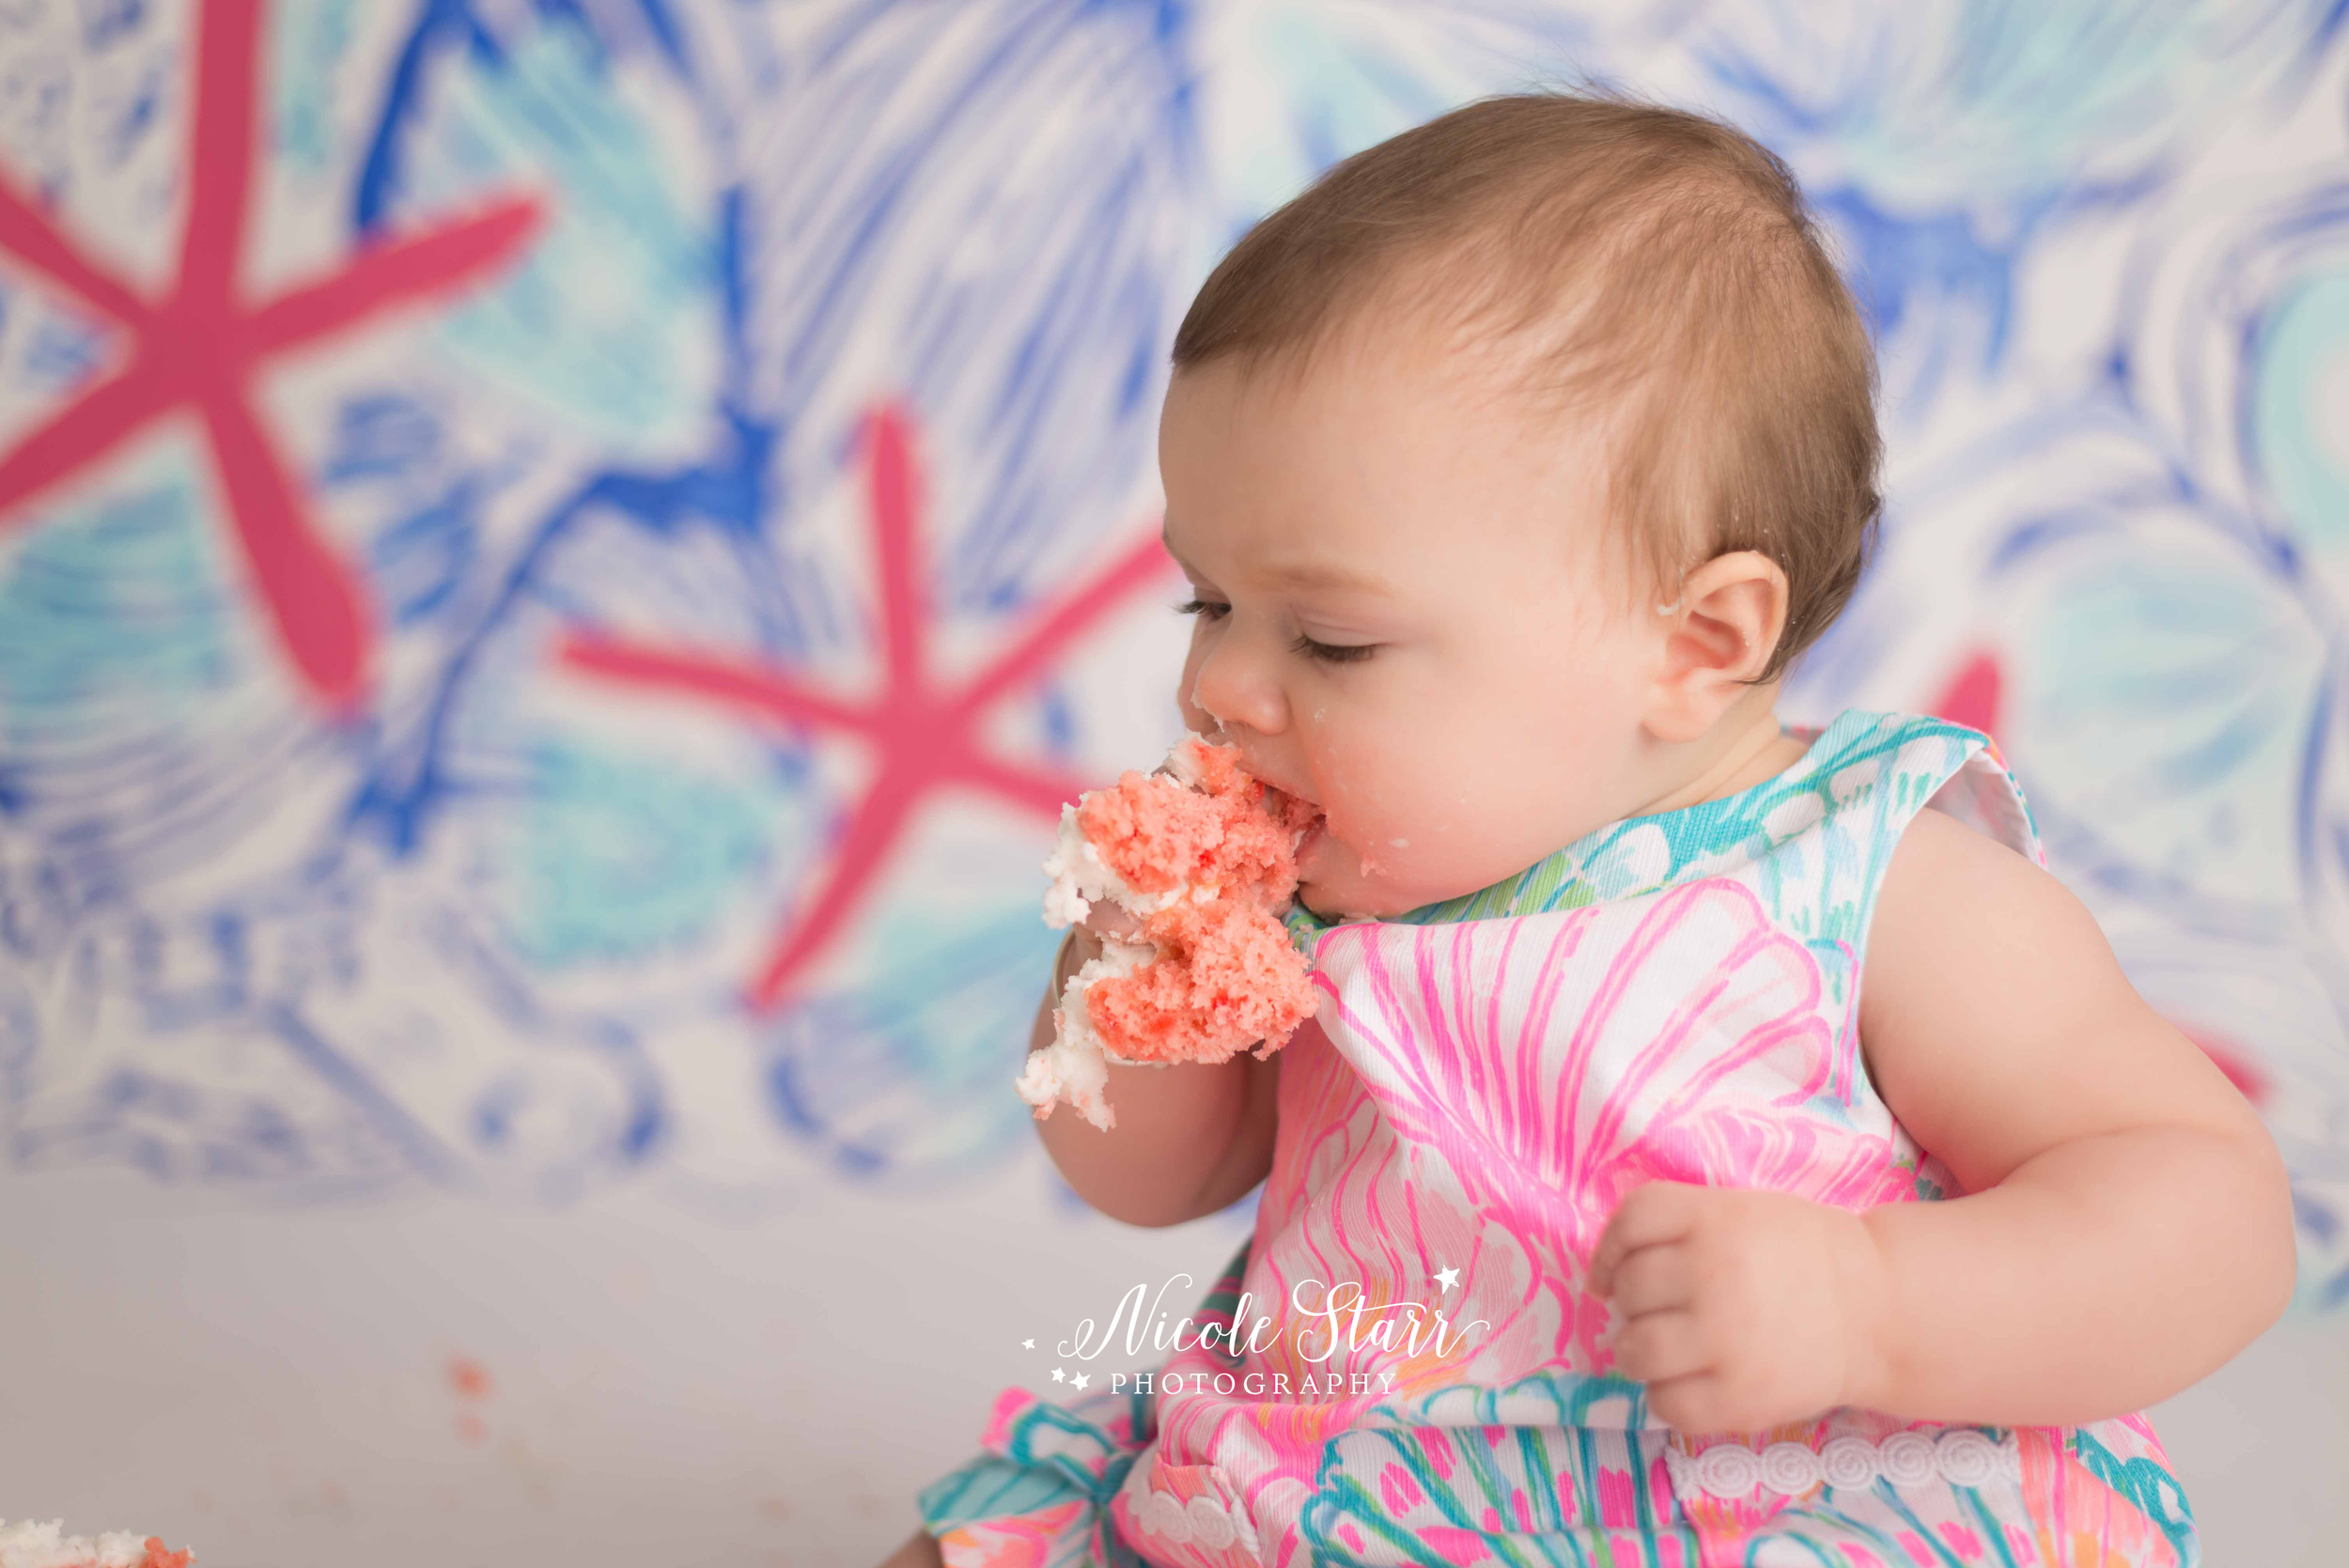 saratoga springs albany baby photographer lilly pulitzer birthday cake smash .jpg